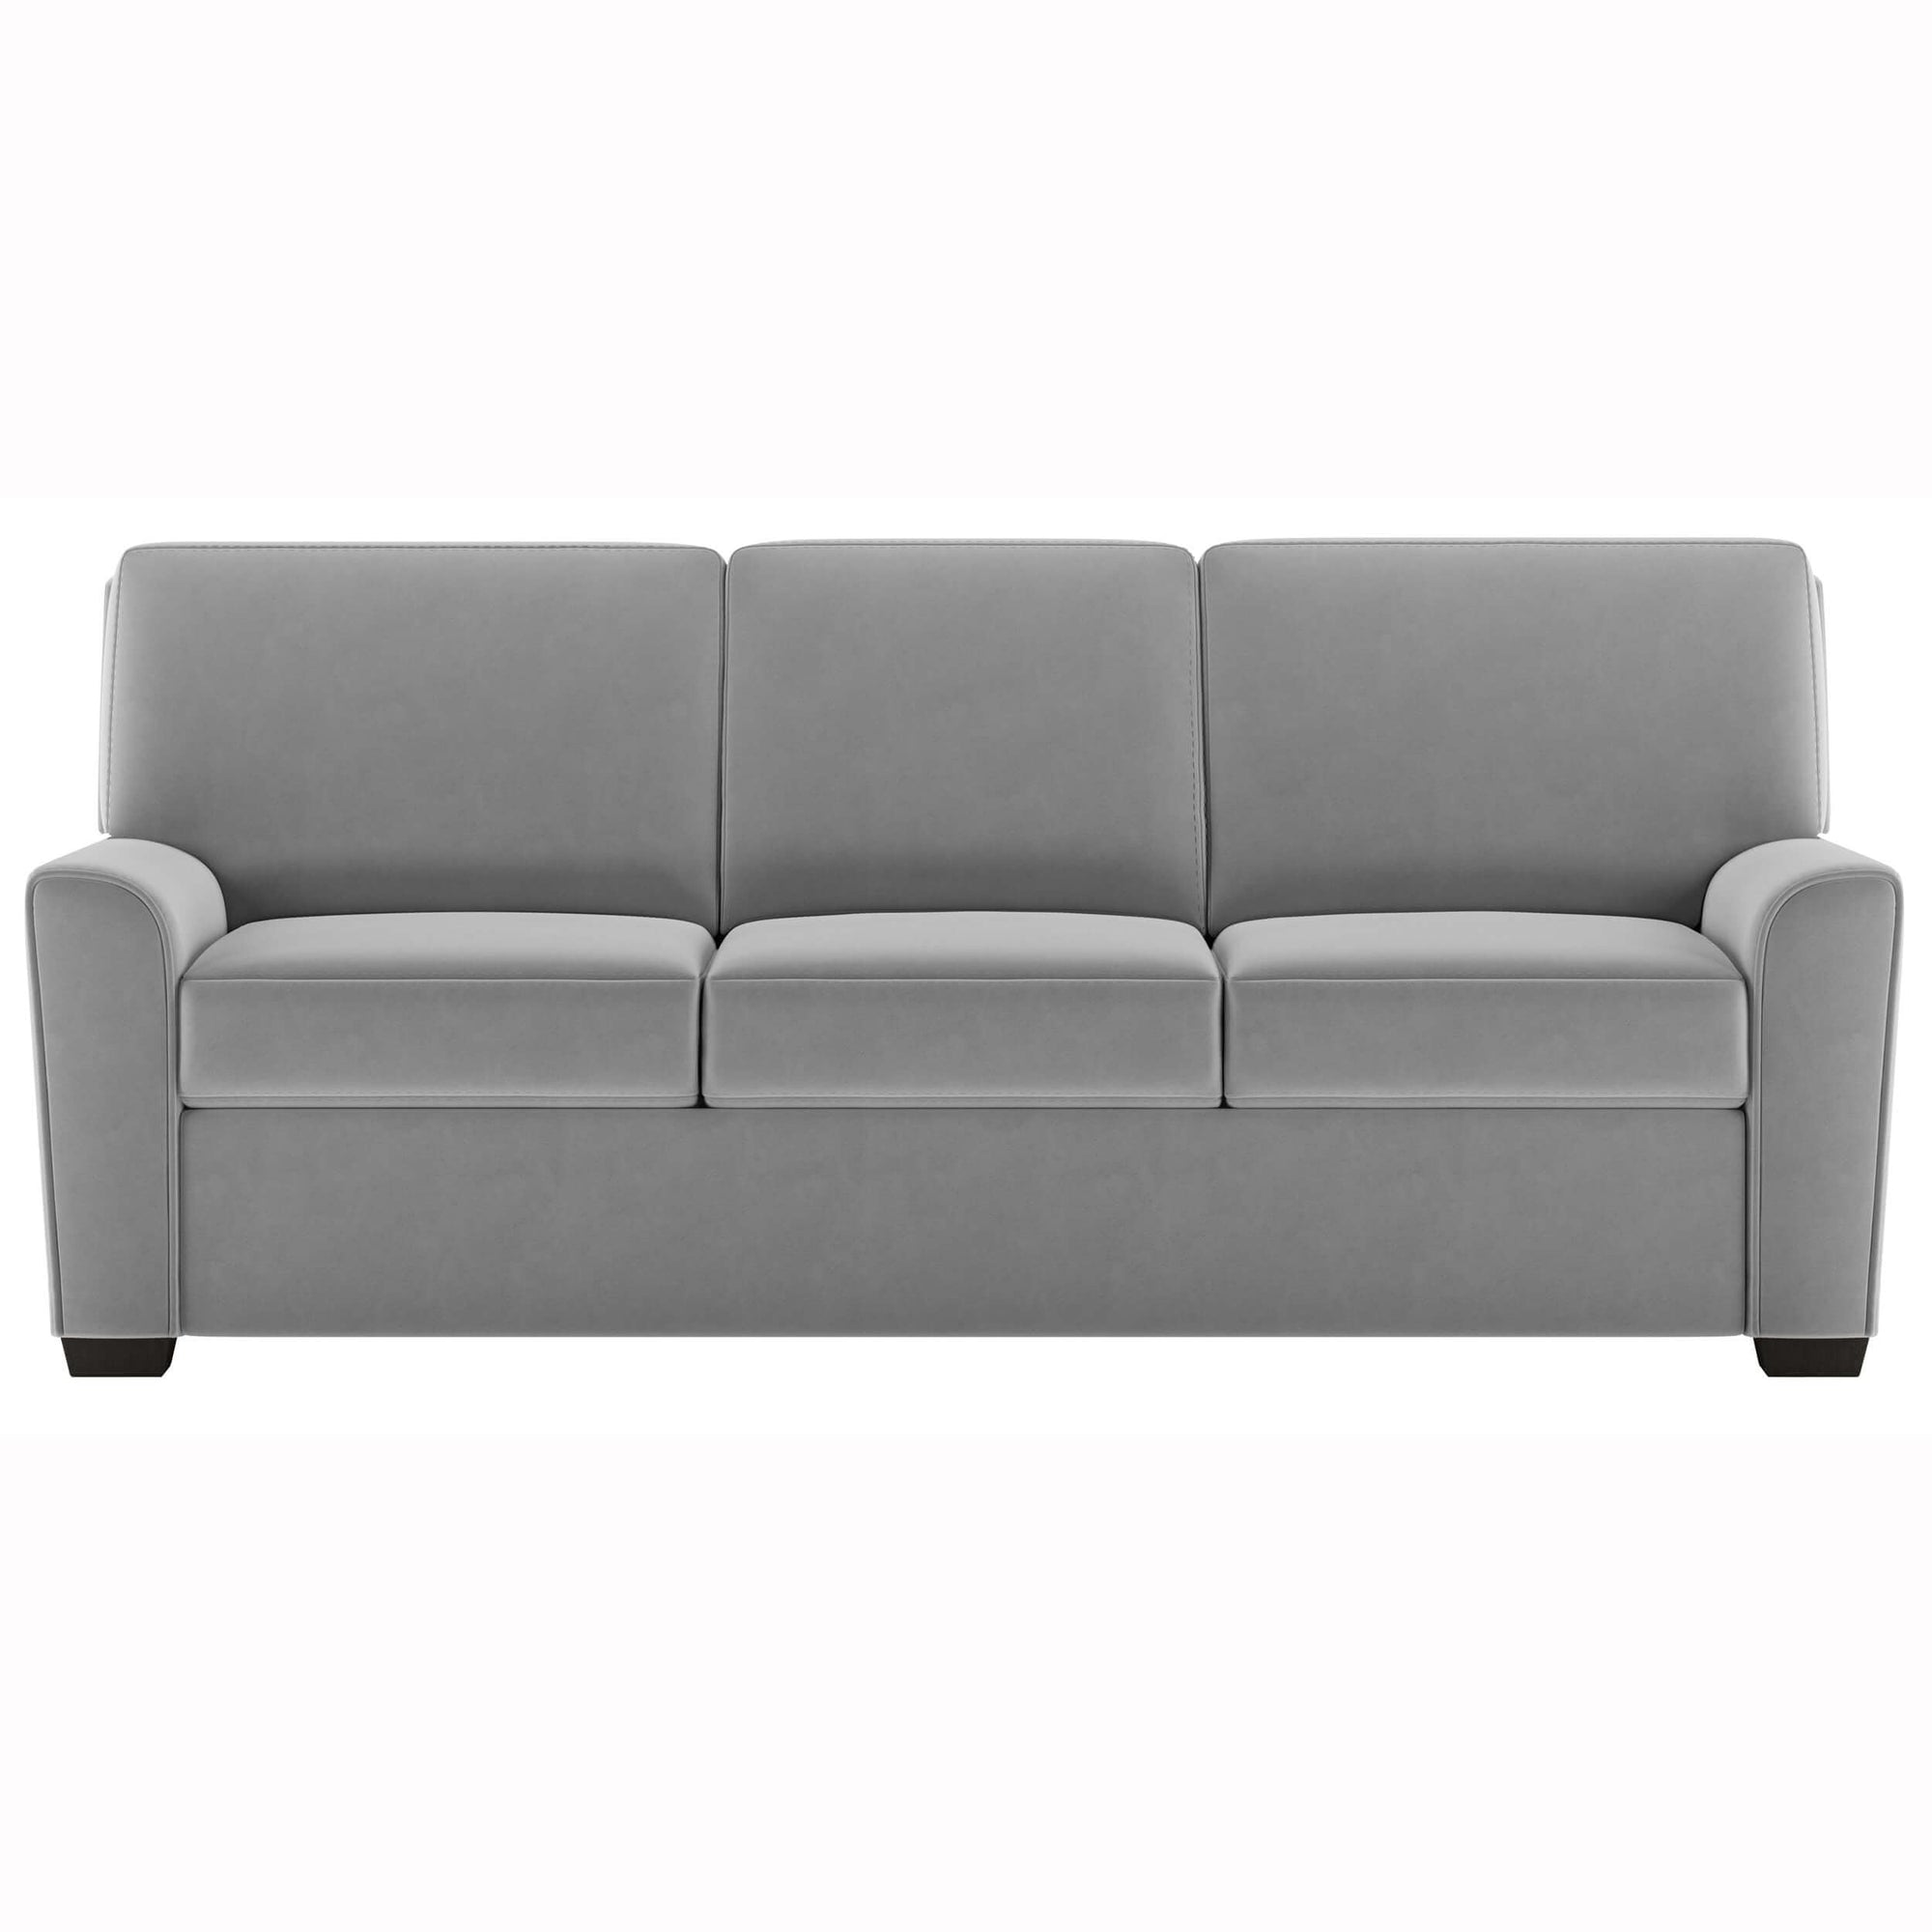 American Leather Klein Queen Sleeper Sofa Toray Ultrasuede French Gra High Fashion Home